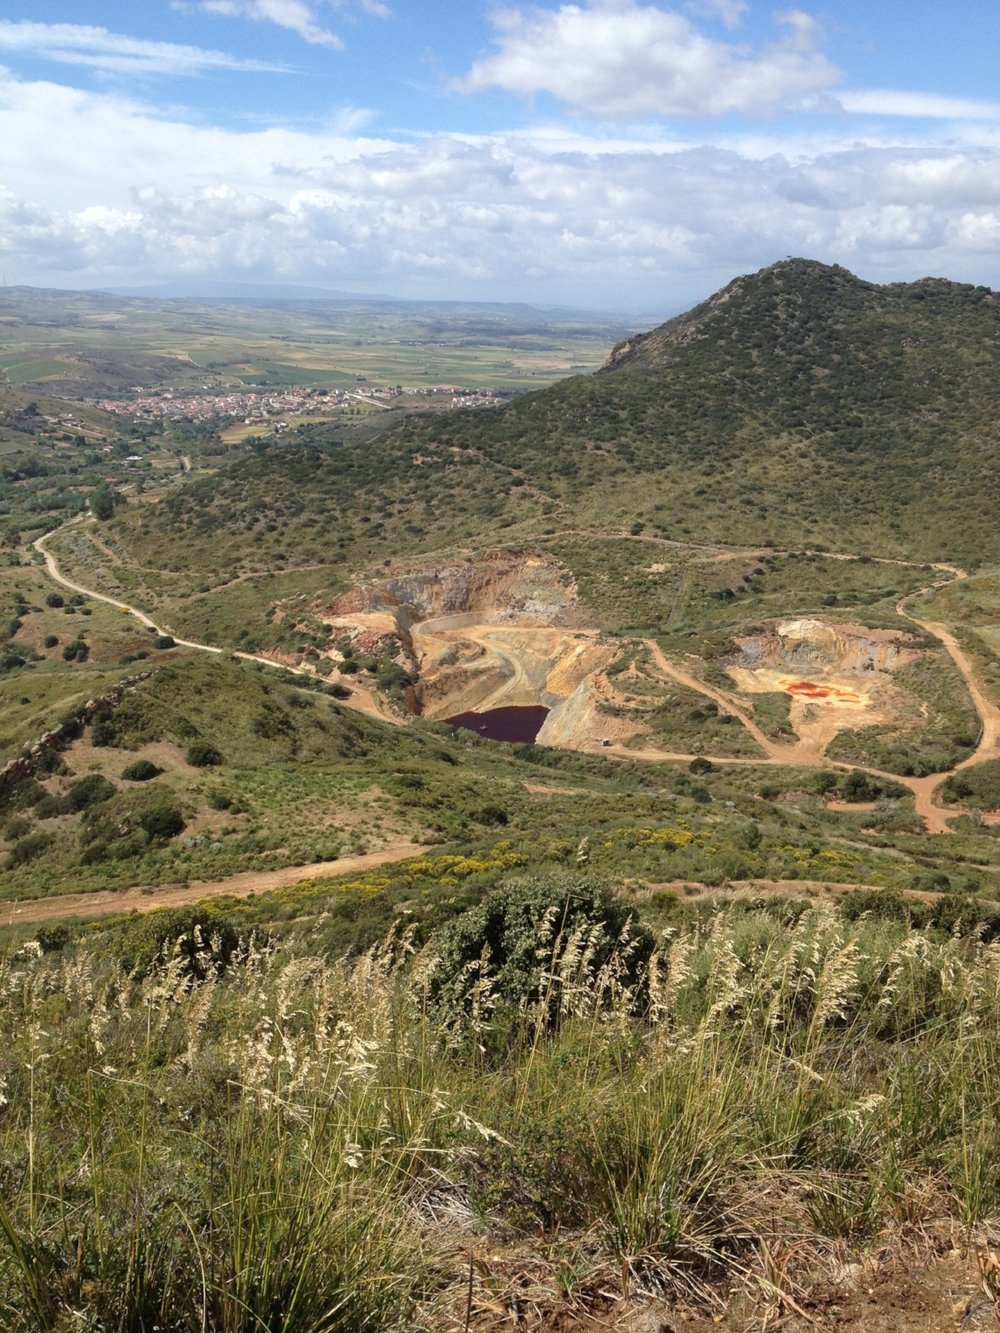 Image 2: Pit, Furtei, & the Campidano Plain, 2016. Photograph by Christopher Alton